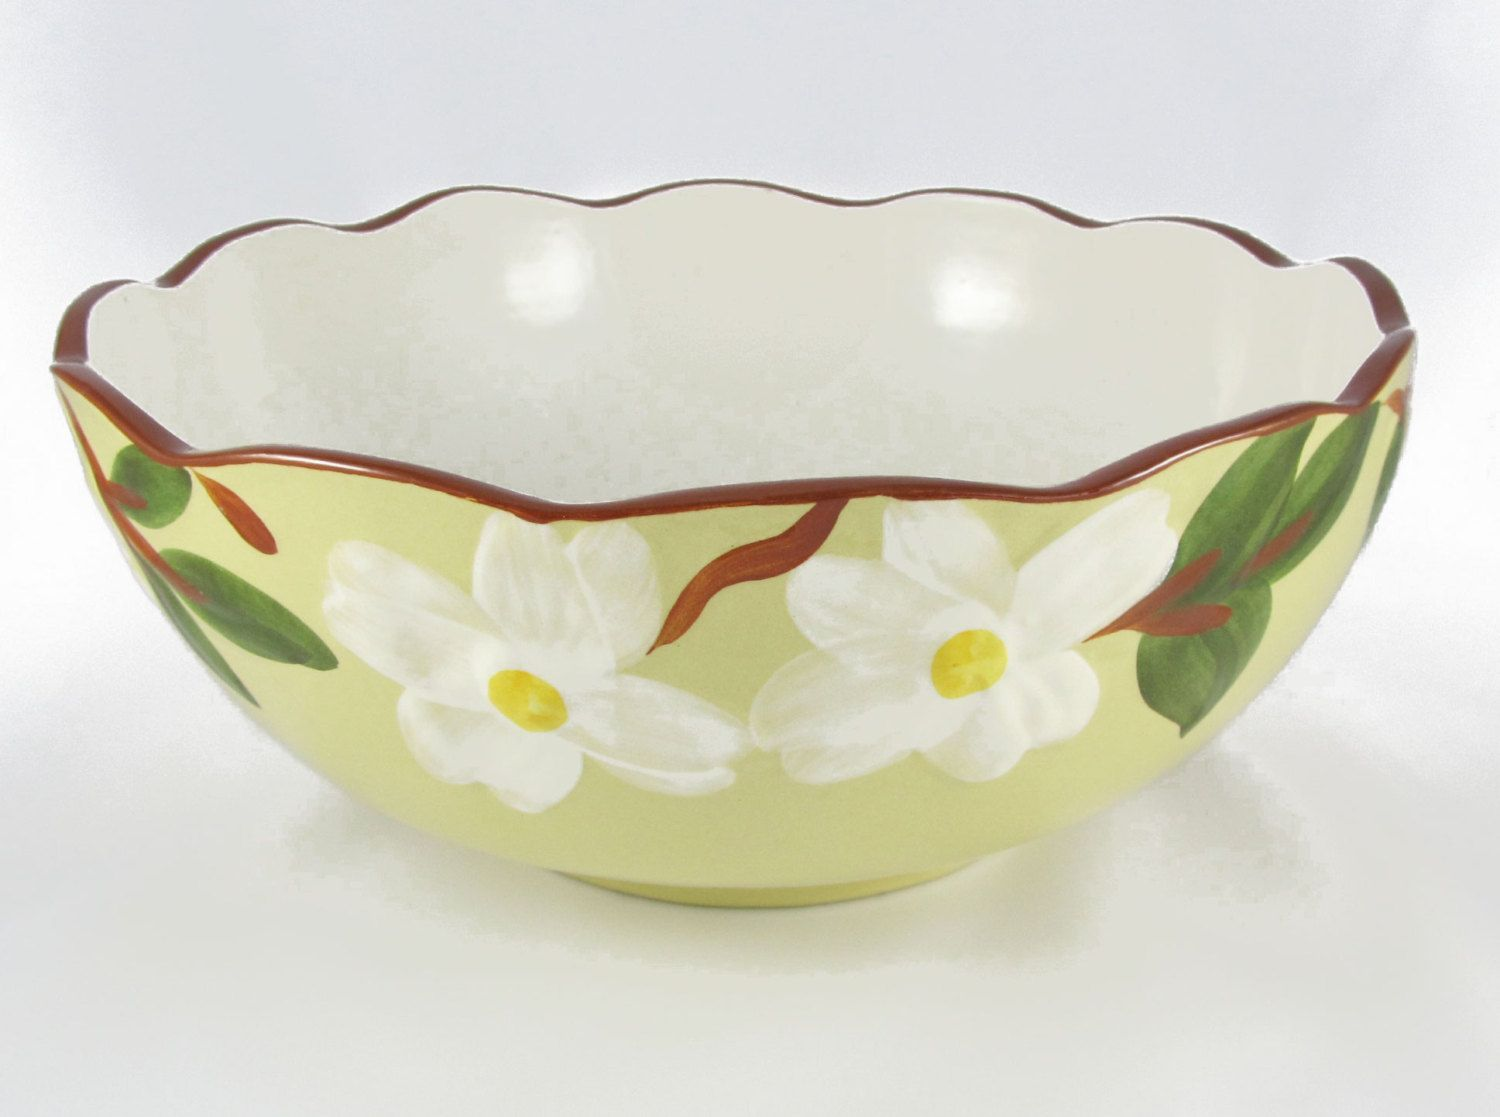 Stangl Pottery White Dogwood Salad Bowl Stangl Dogwood Dinnerware Large Serving Bowl by 2kVintageShop on Etsy & Stangl Pottery White Dogwood Salad Bowl Stangl Dogwood Dinnerware ...